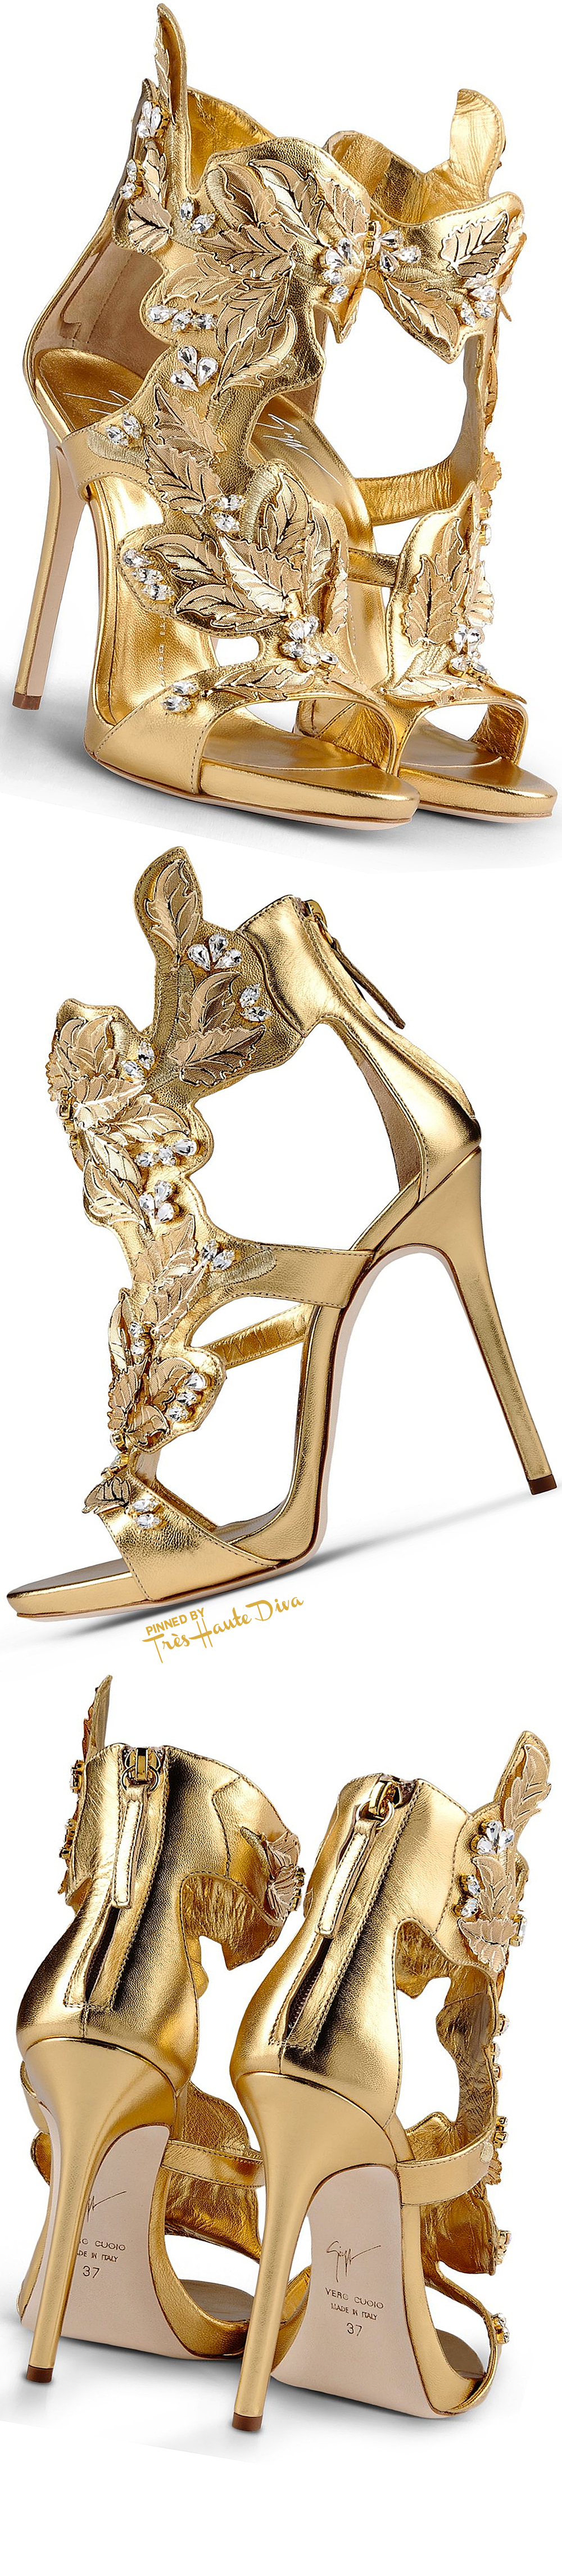 Giuseppe Zanotti Gold and Rhinestone Embellished Nappa Leather Sandals